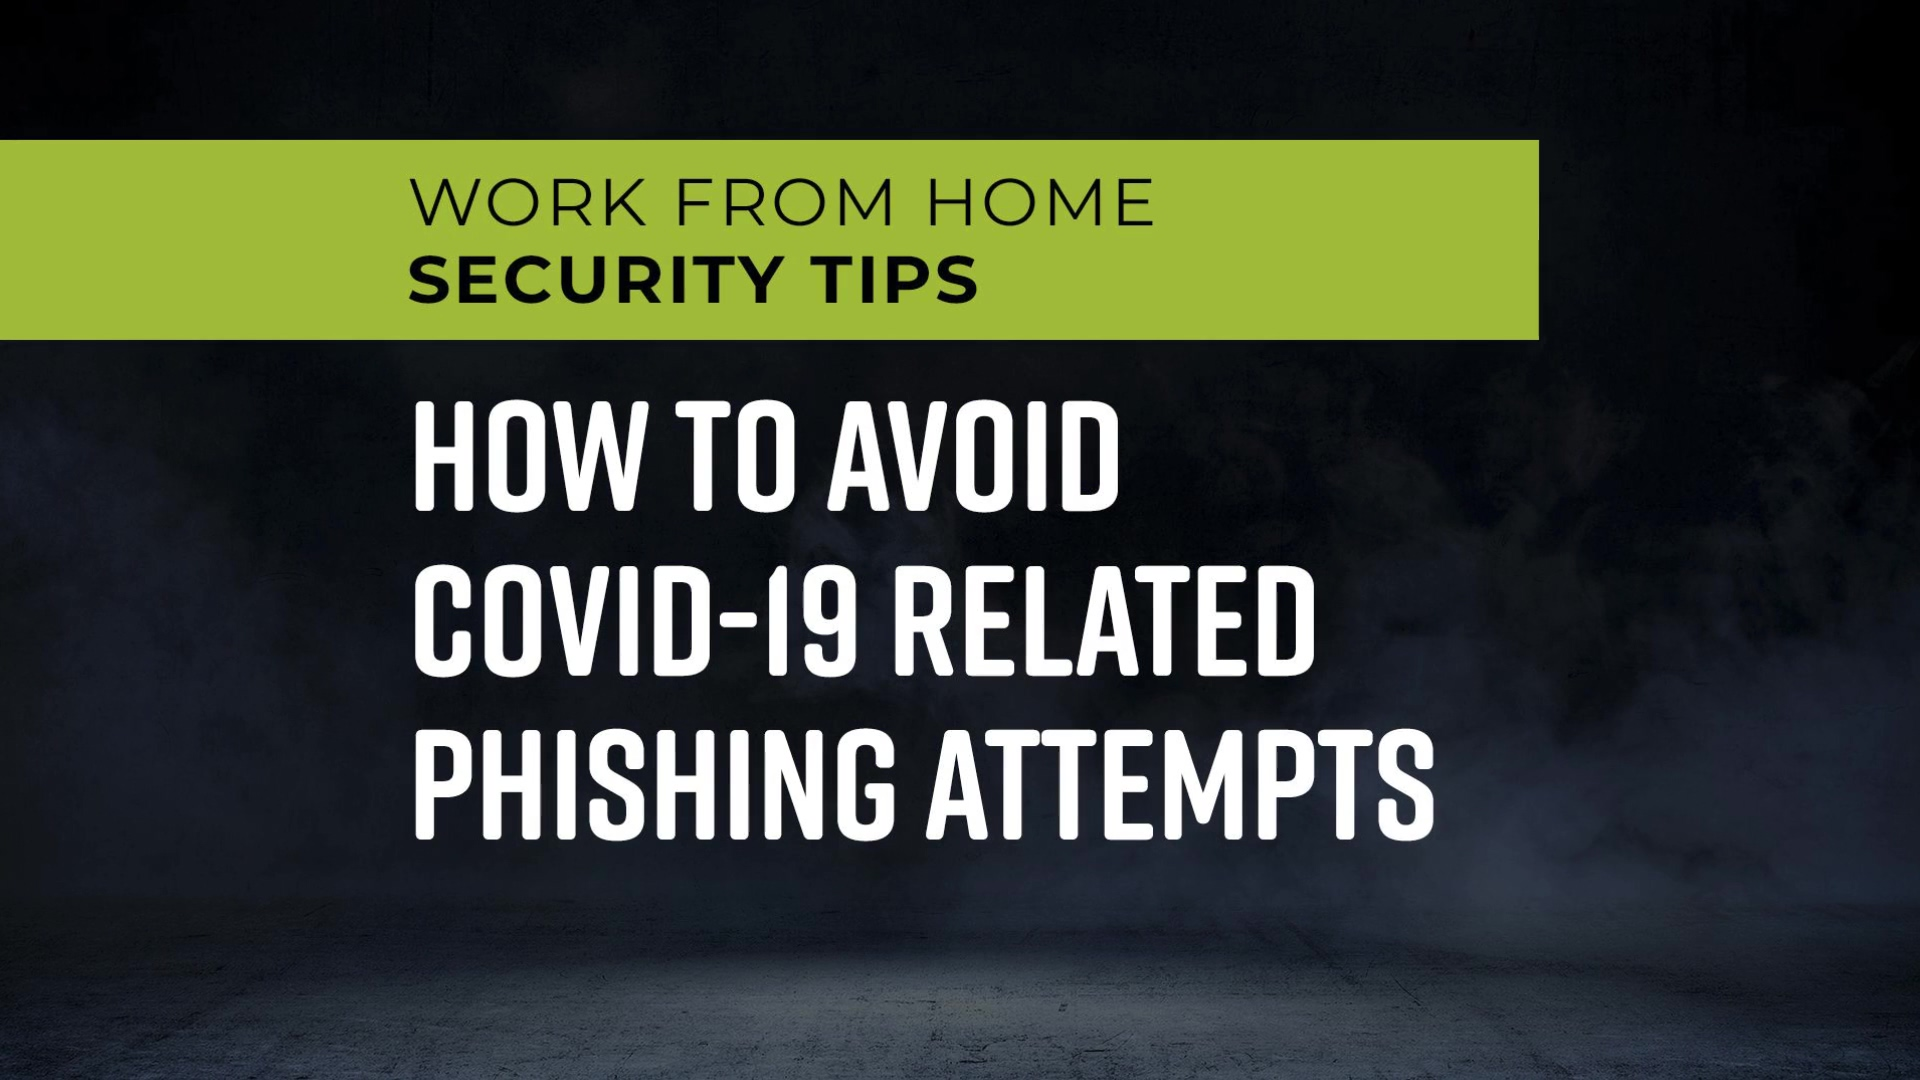 Work_From_Home_Security_Tips_-_How_to_Avoid_COVID-19_Related_Phishing_Attempts_1080p